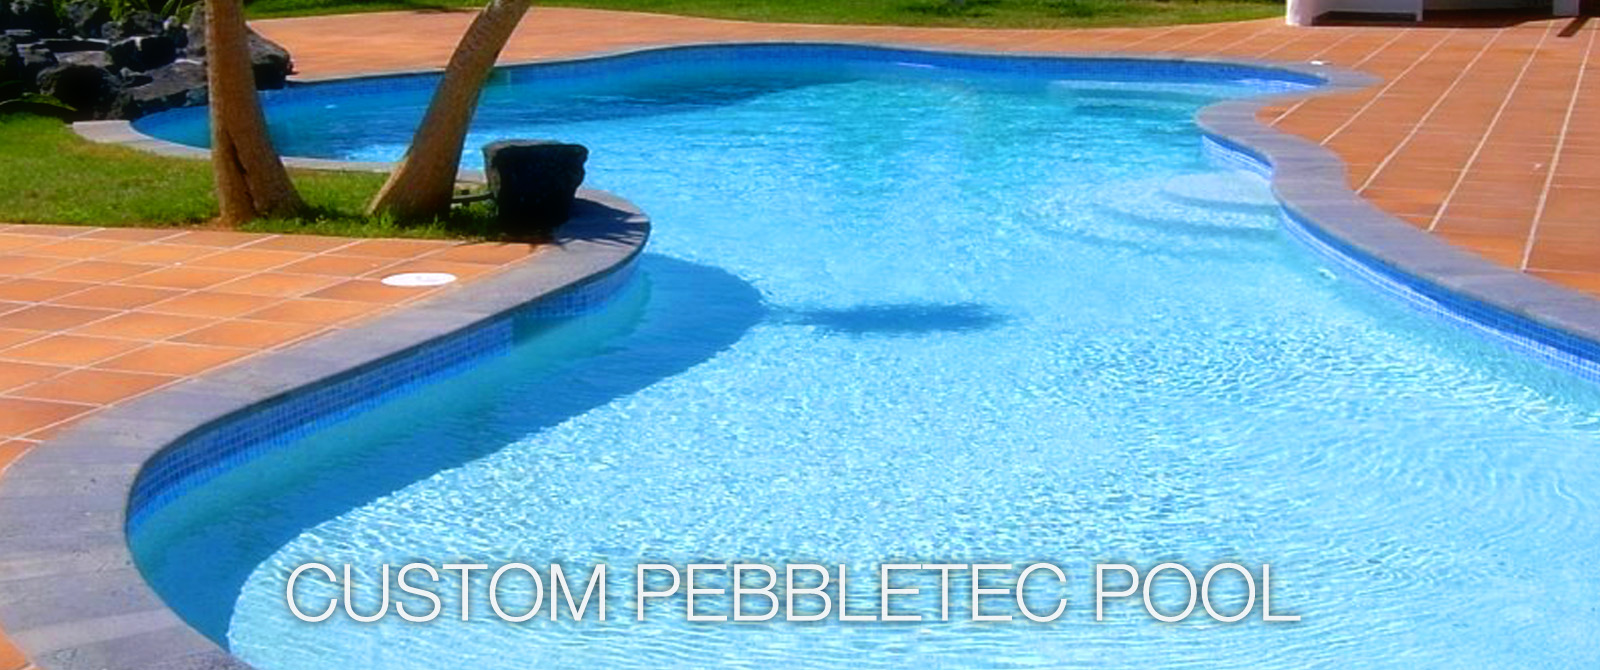 Pebble tec pools Lanzarote